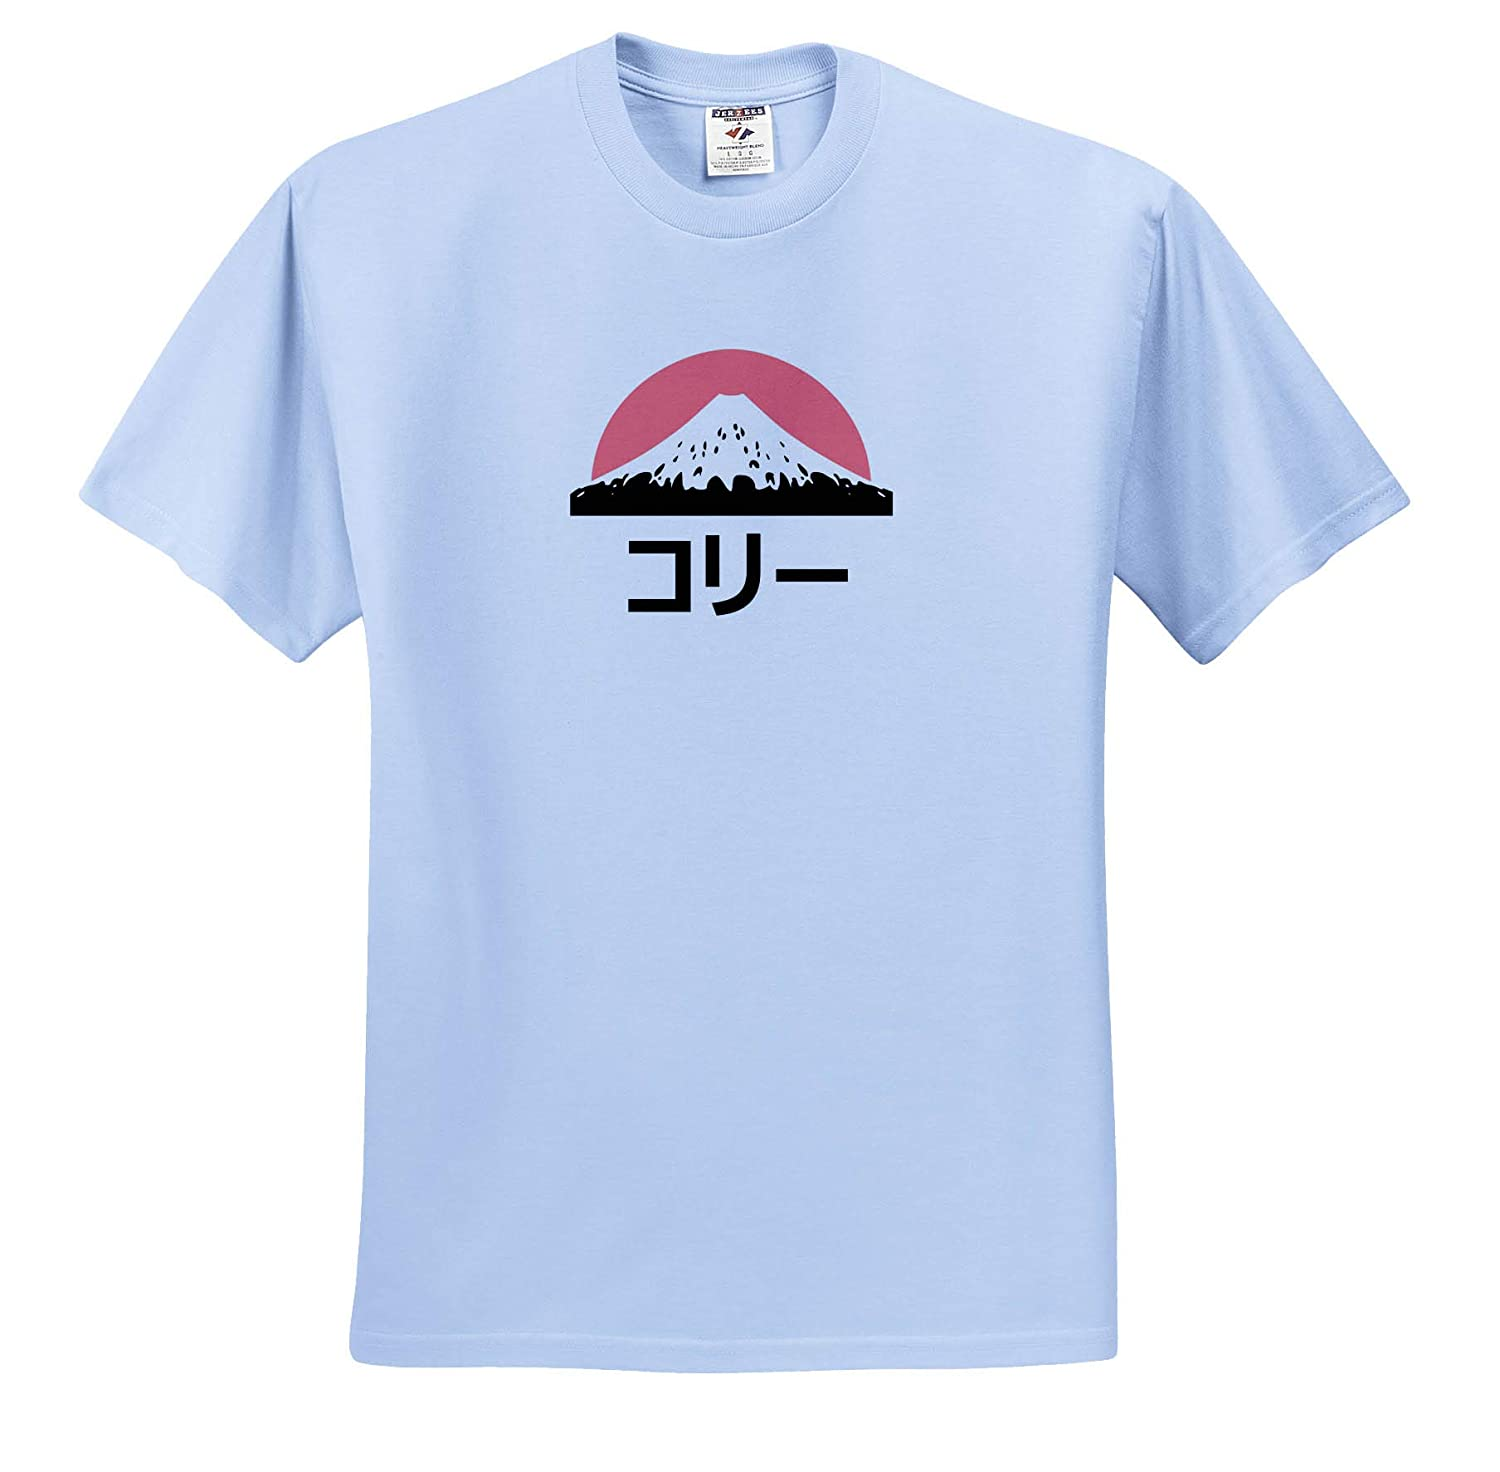 Name in Japanese ts/_320461 Adult T-Shirt XL Cory or Corey in Japanese Letters 3dRose InspirationzStore